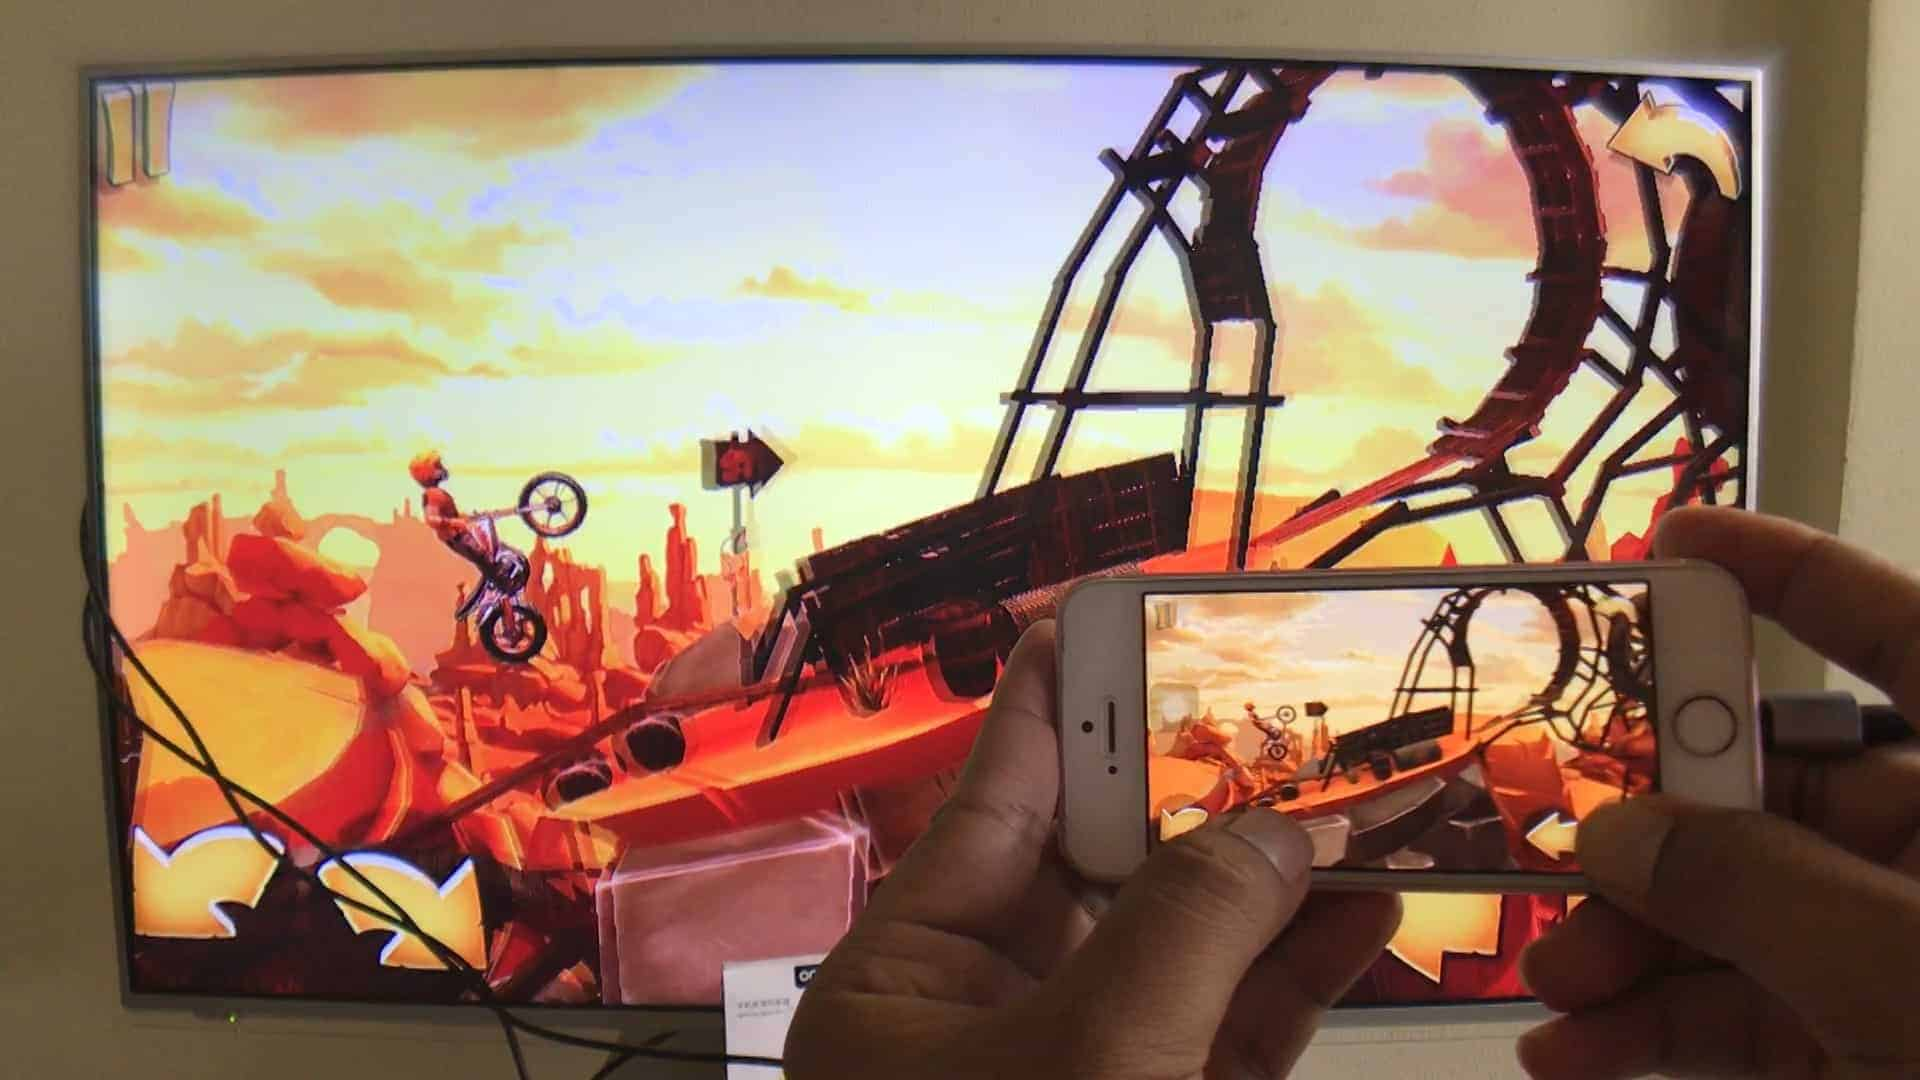 Lightning to HDMI Cable for iPhone-Update iOS 12 model7522n-Example of using play game